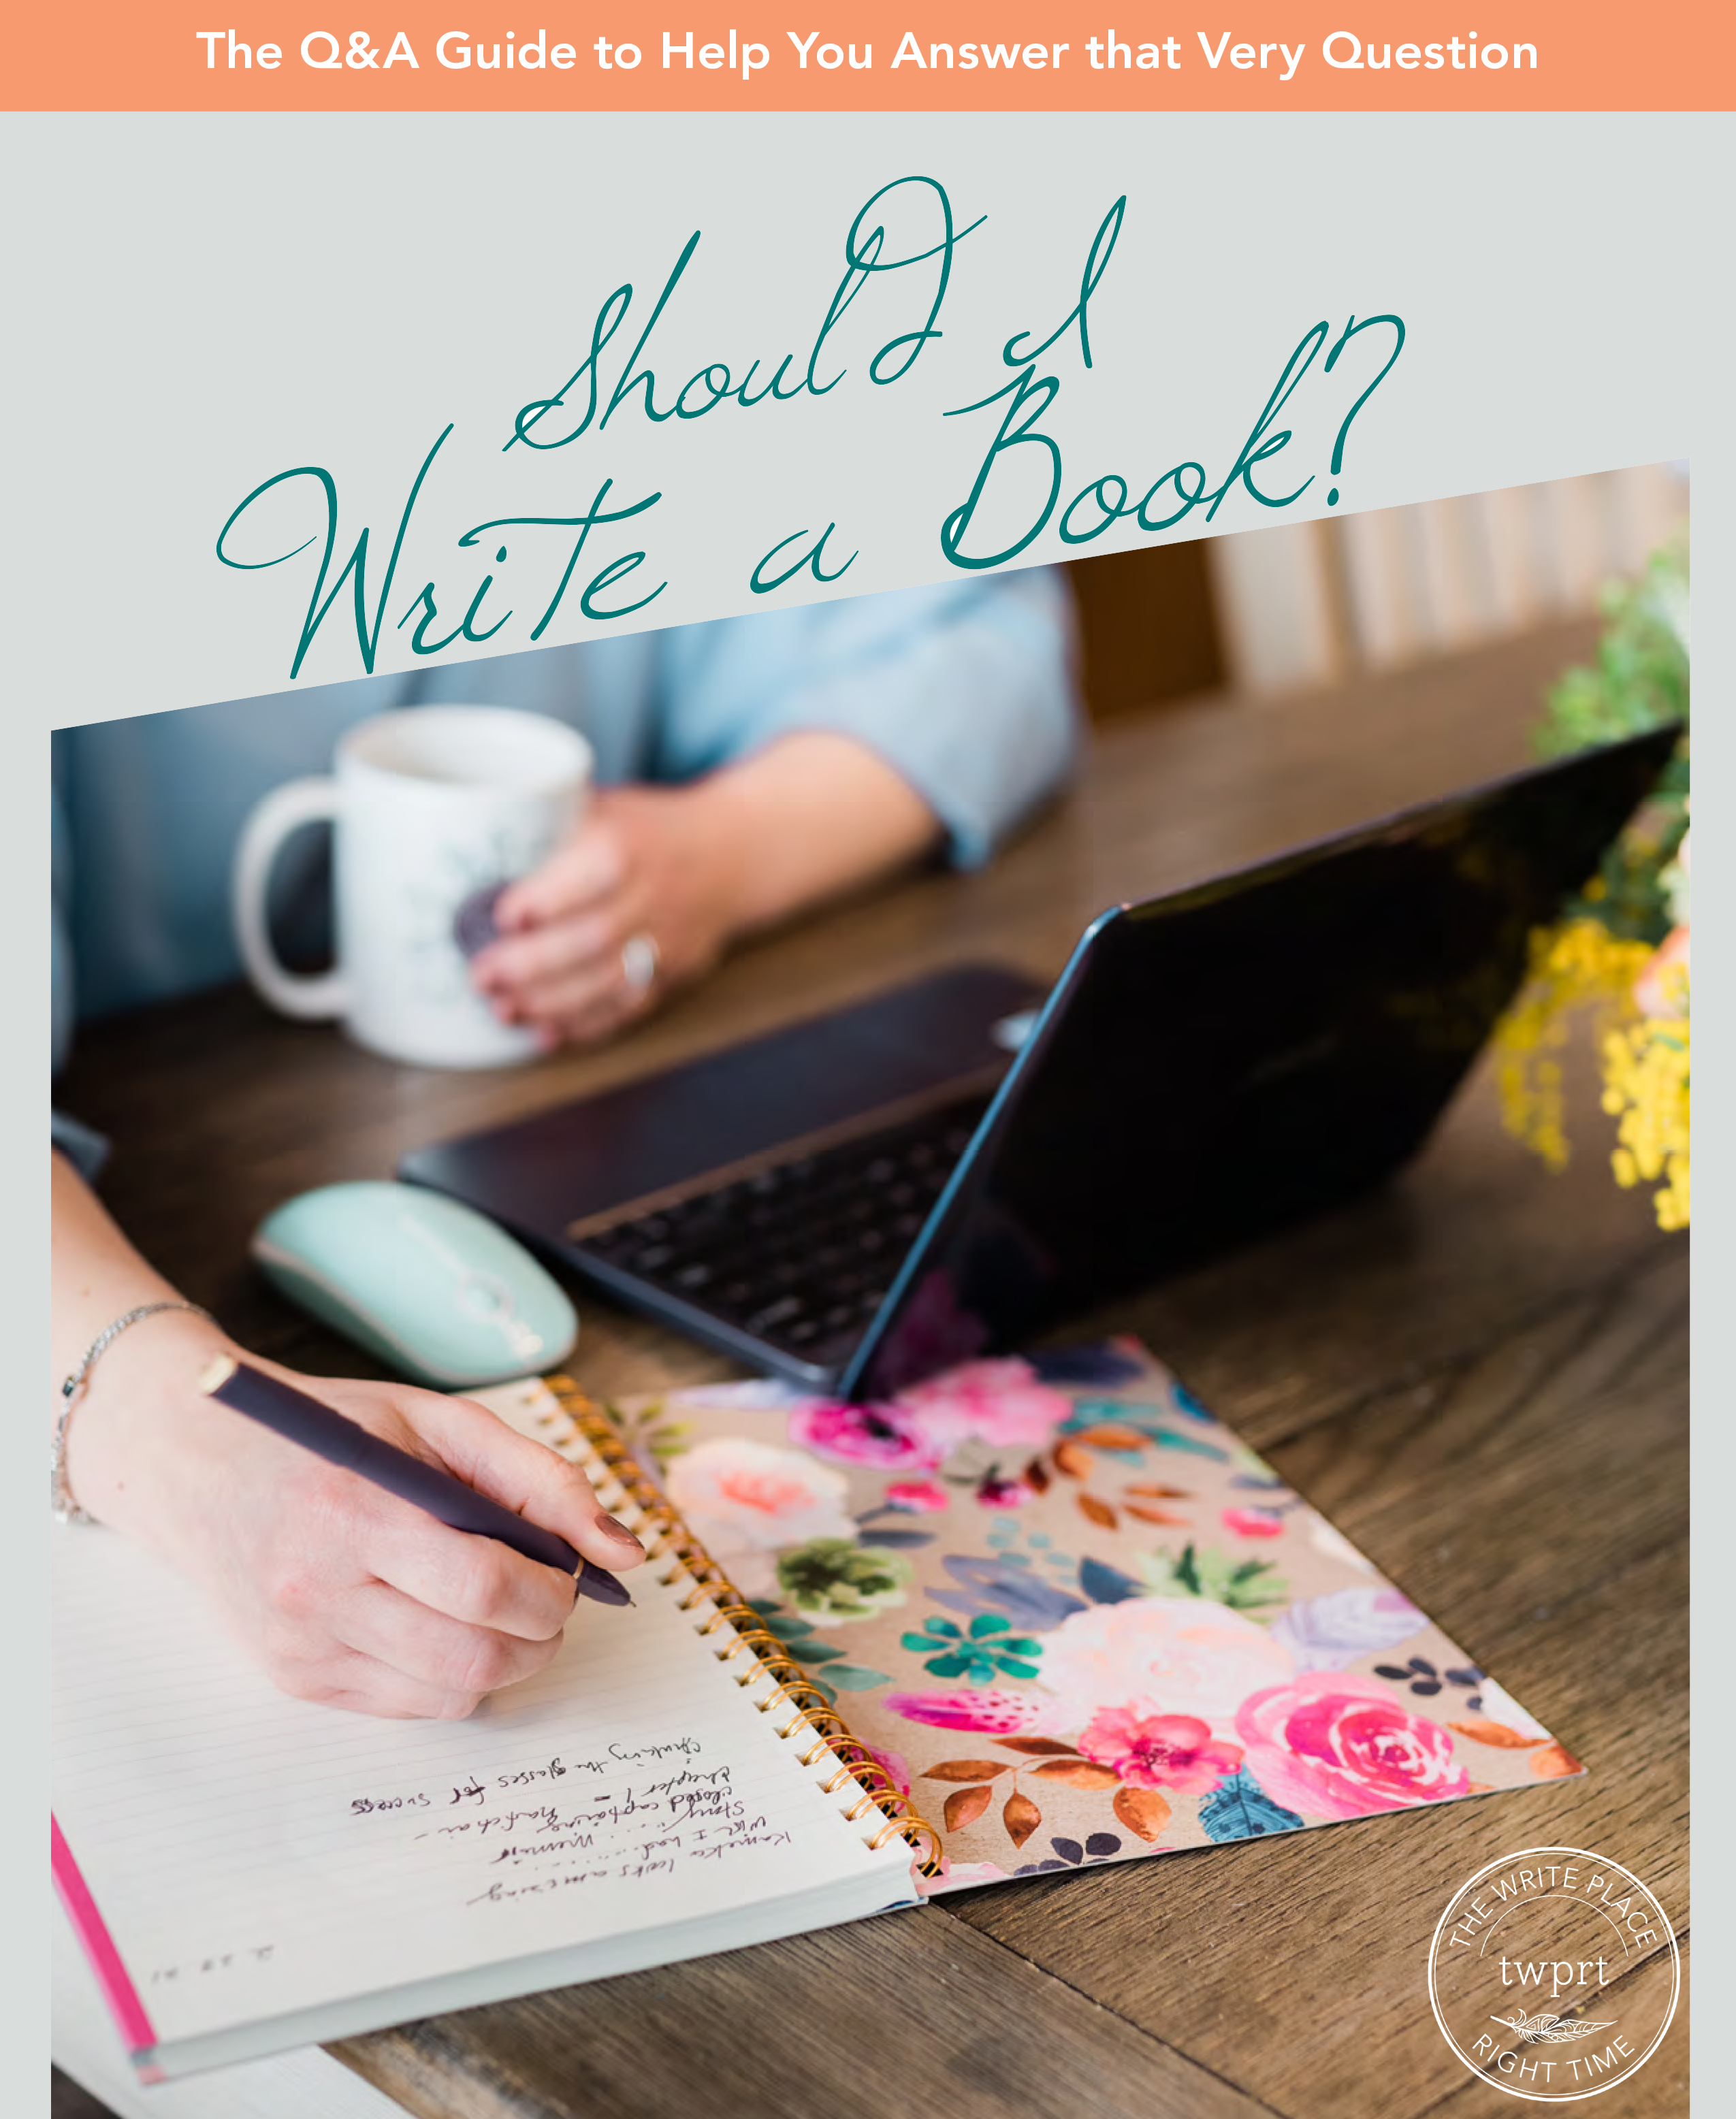 So You Want to Write a Book...The Q&A Guide (1)-1